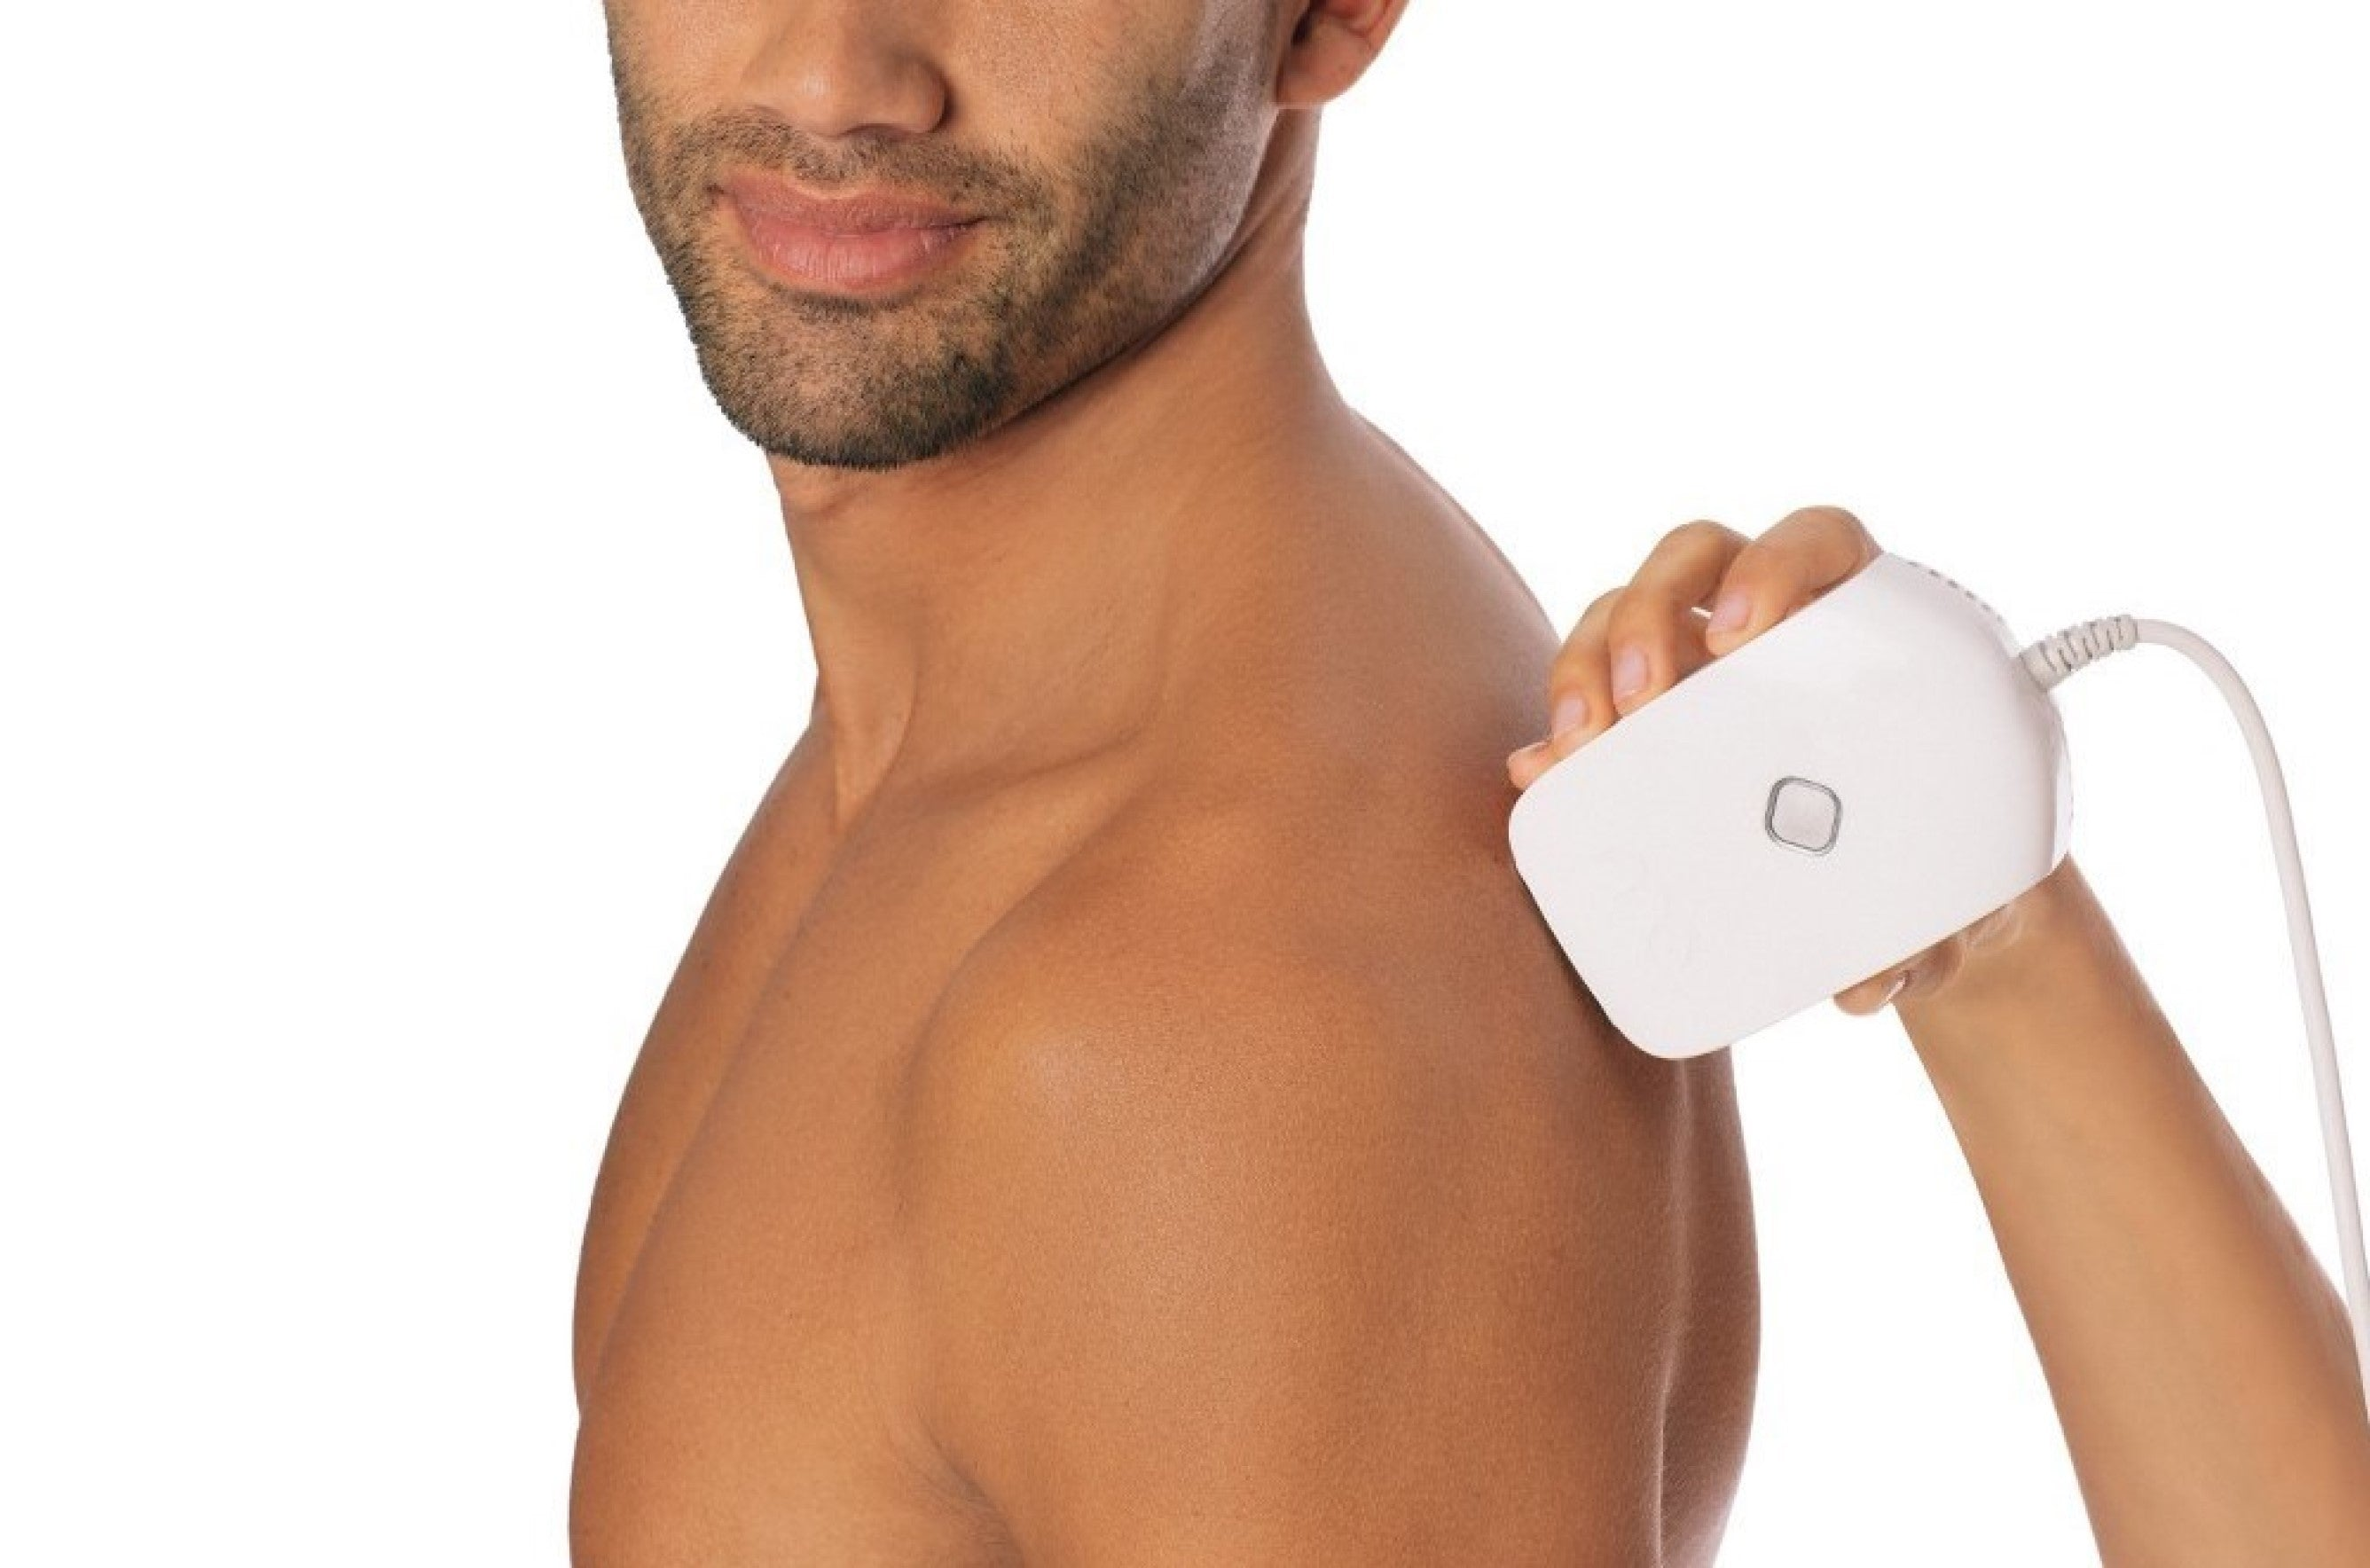 mē Sleek Professional At Home Face & Body Permanent Hair Reduction System (FDA-Cleared)